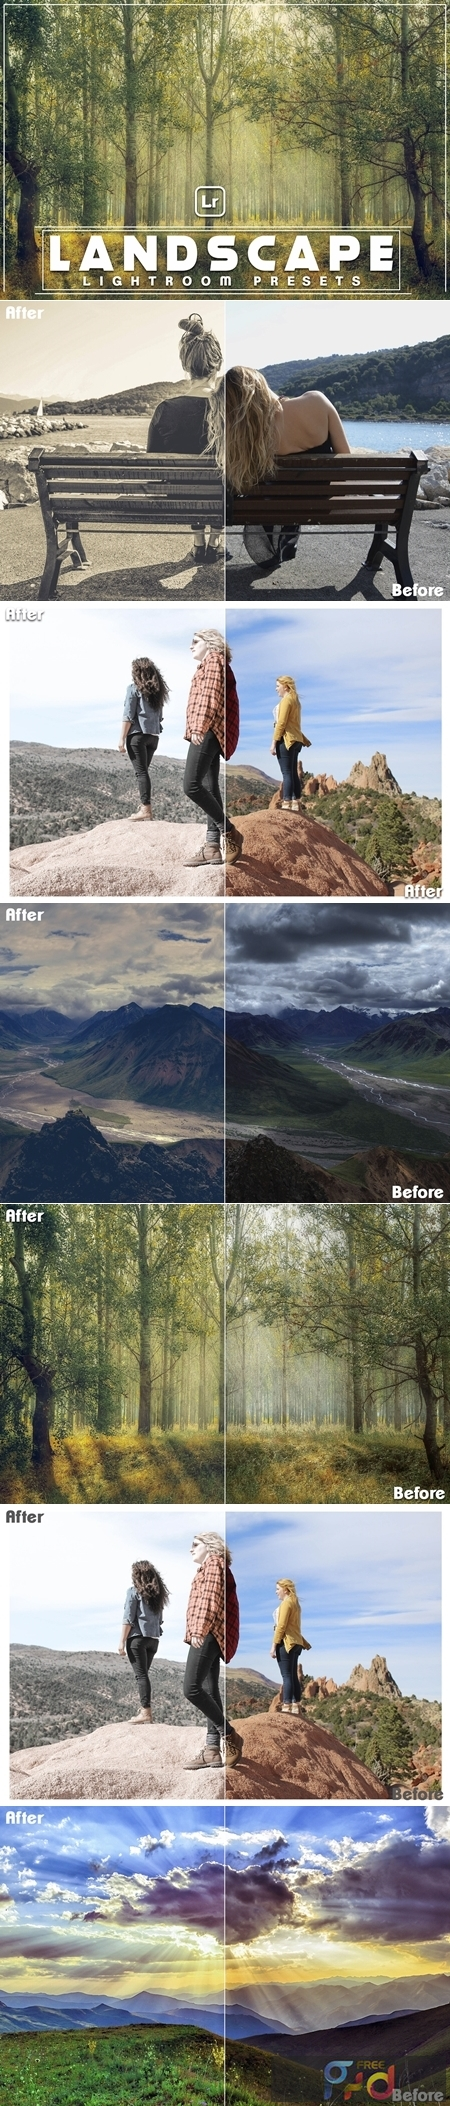 Landscape Lightroom Presets 1